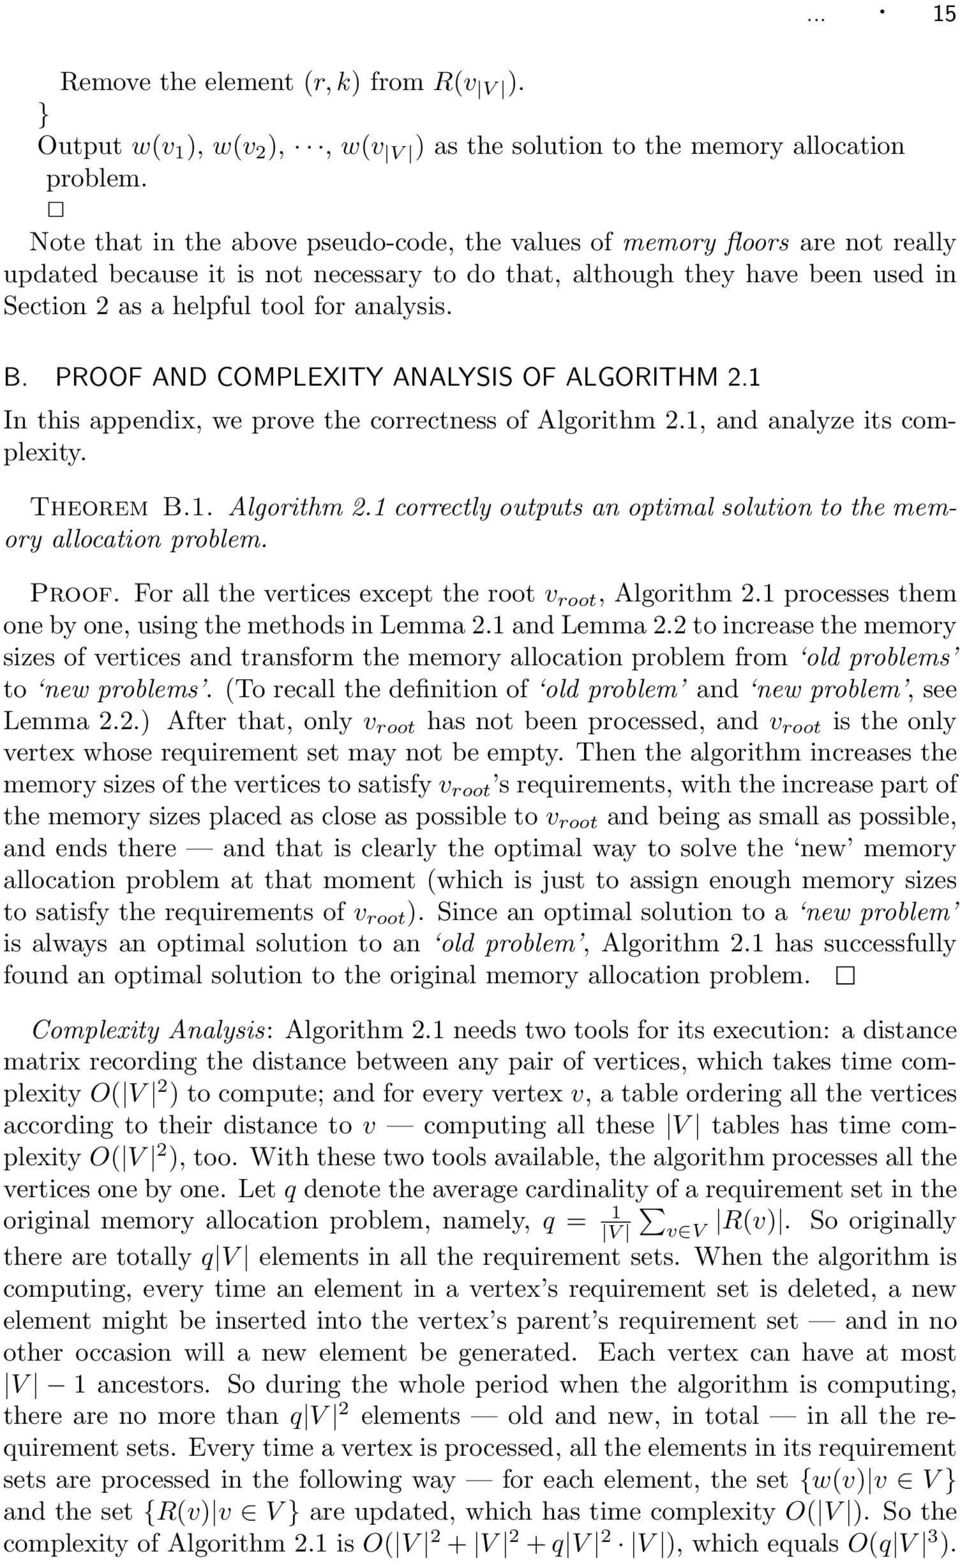 B. PROOF AND COMPLEXITY ANALYSIS OF ALGORITHM 2.1 In this appendix, we prove the correctness of Algorithm 2.1, and analyze its complexity. Theorem B.1. Algorithm 2.1 correctly outputs an optimal solution to the memory allocation problem.